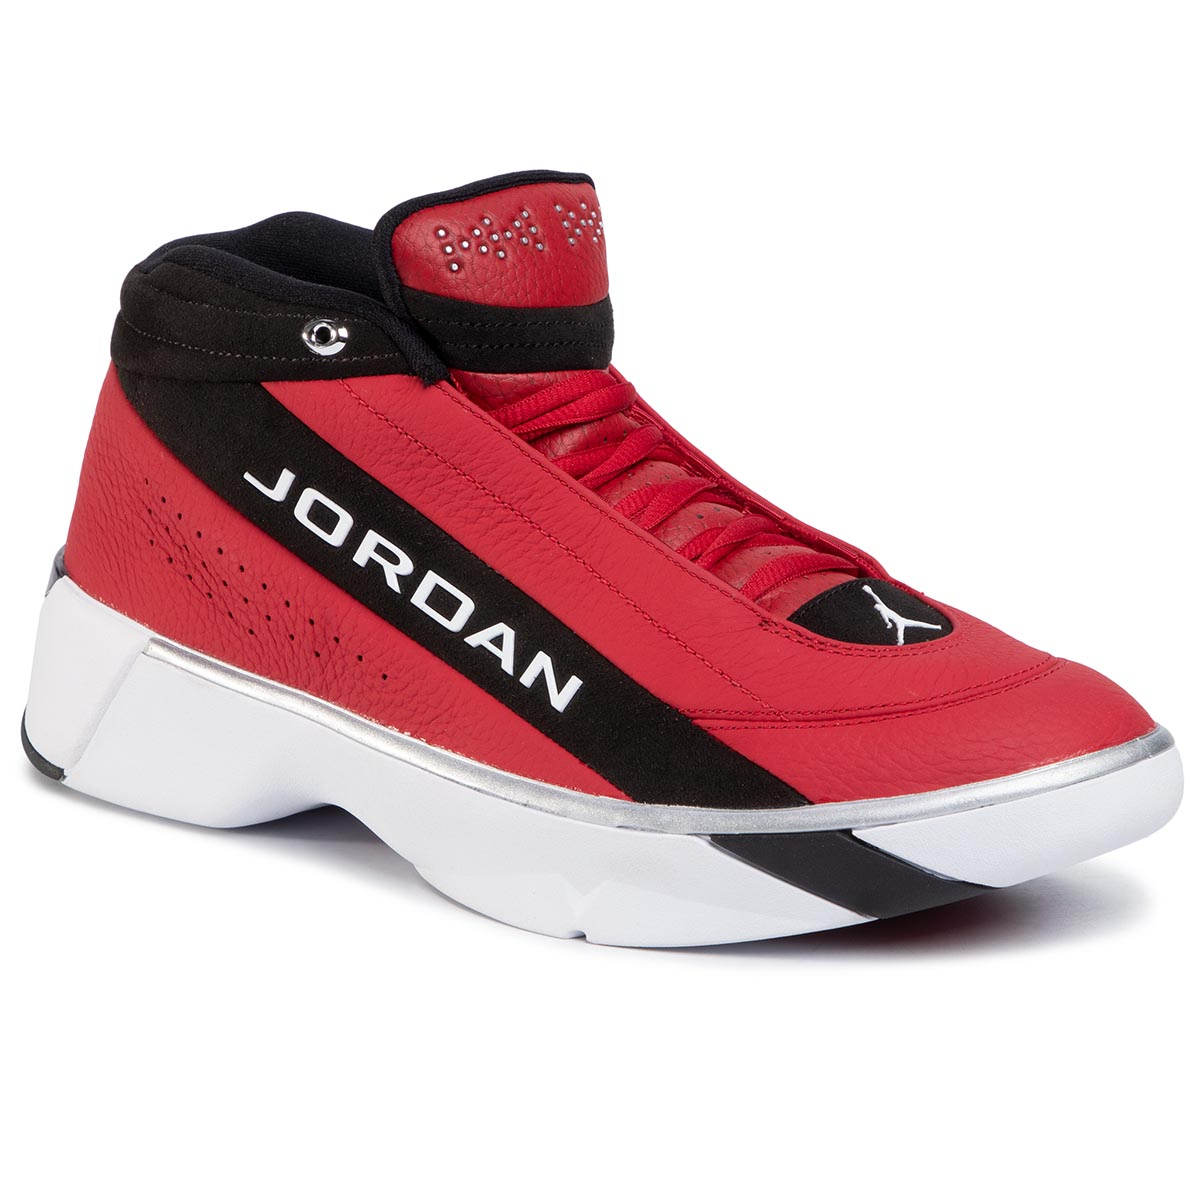 Pantofi Nike - Jordan Team Showcase Cd4150 600 Gym Red/White/Black imagine epantofi.ro 2021